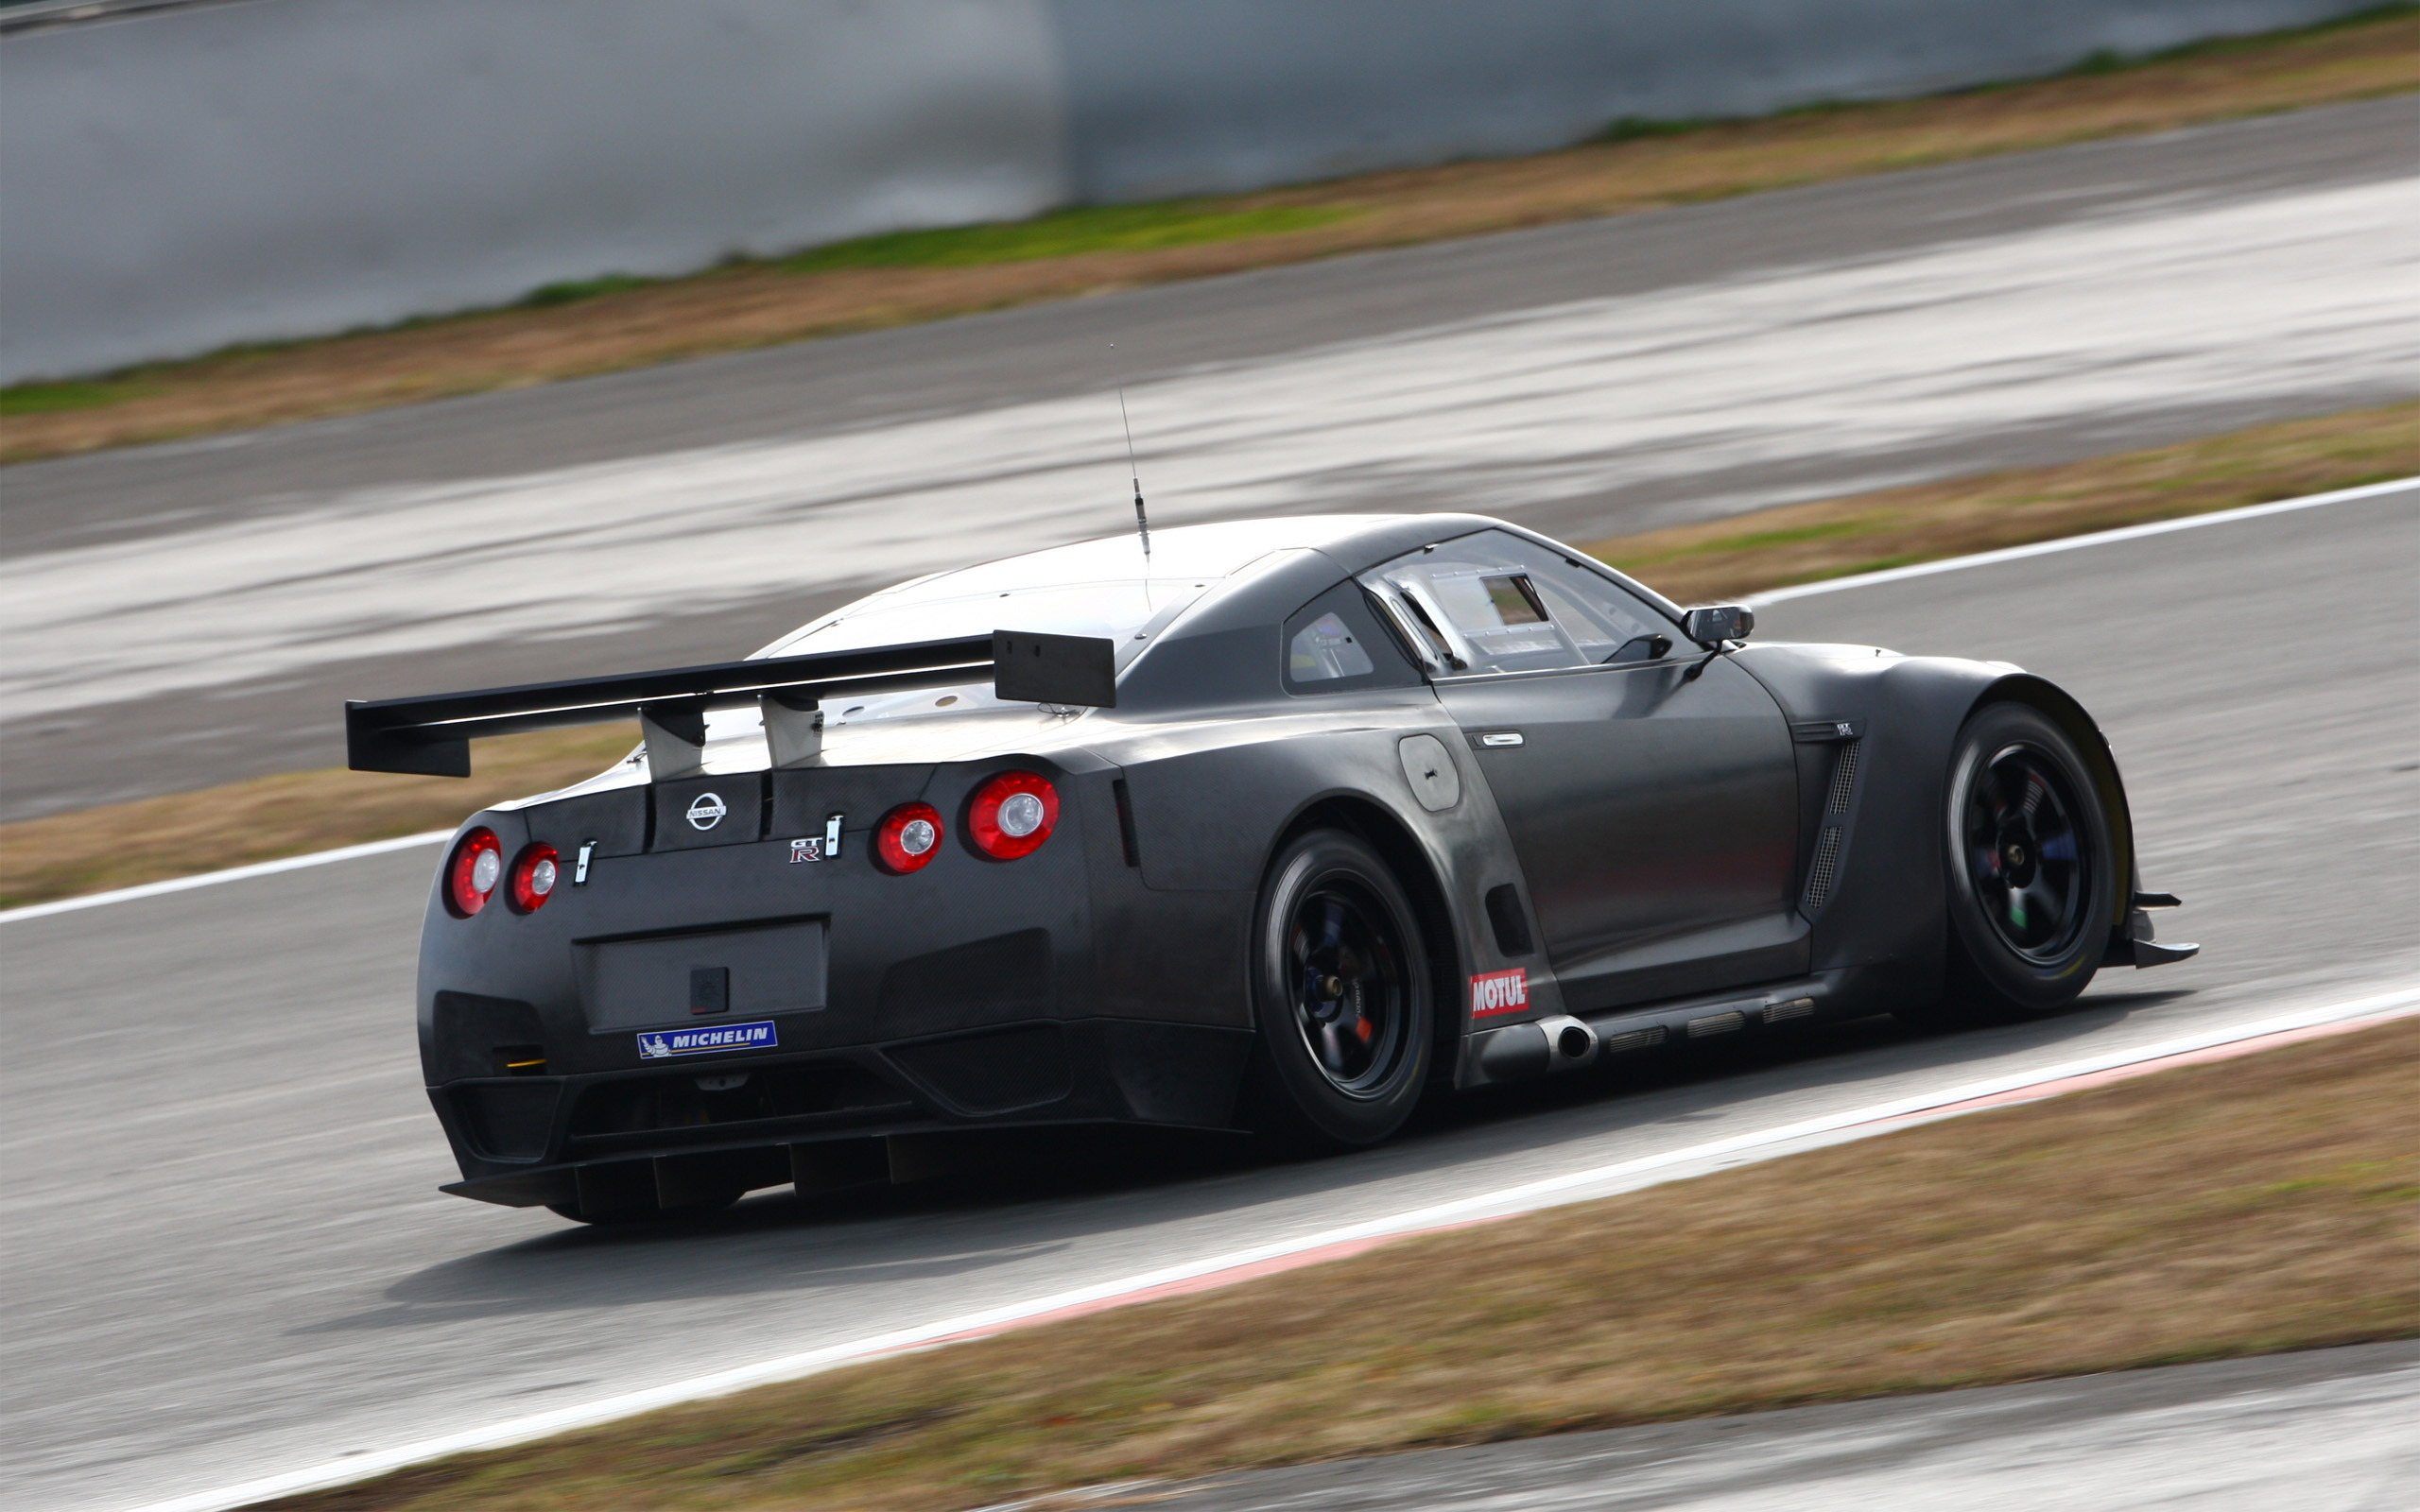 nissan gtr r35 wallpaper wallpapersafari. Black Bedroom Furniture Sets. Home Design Ideas